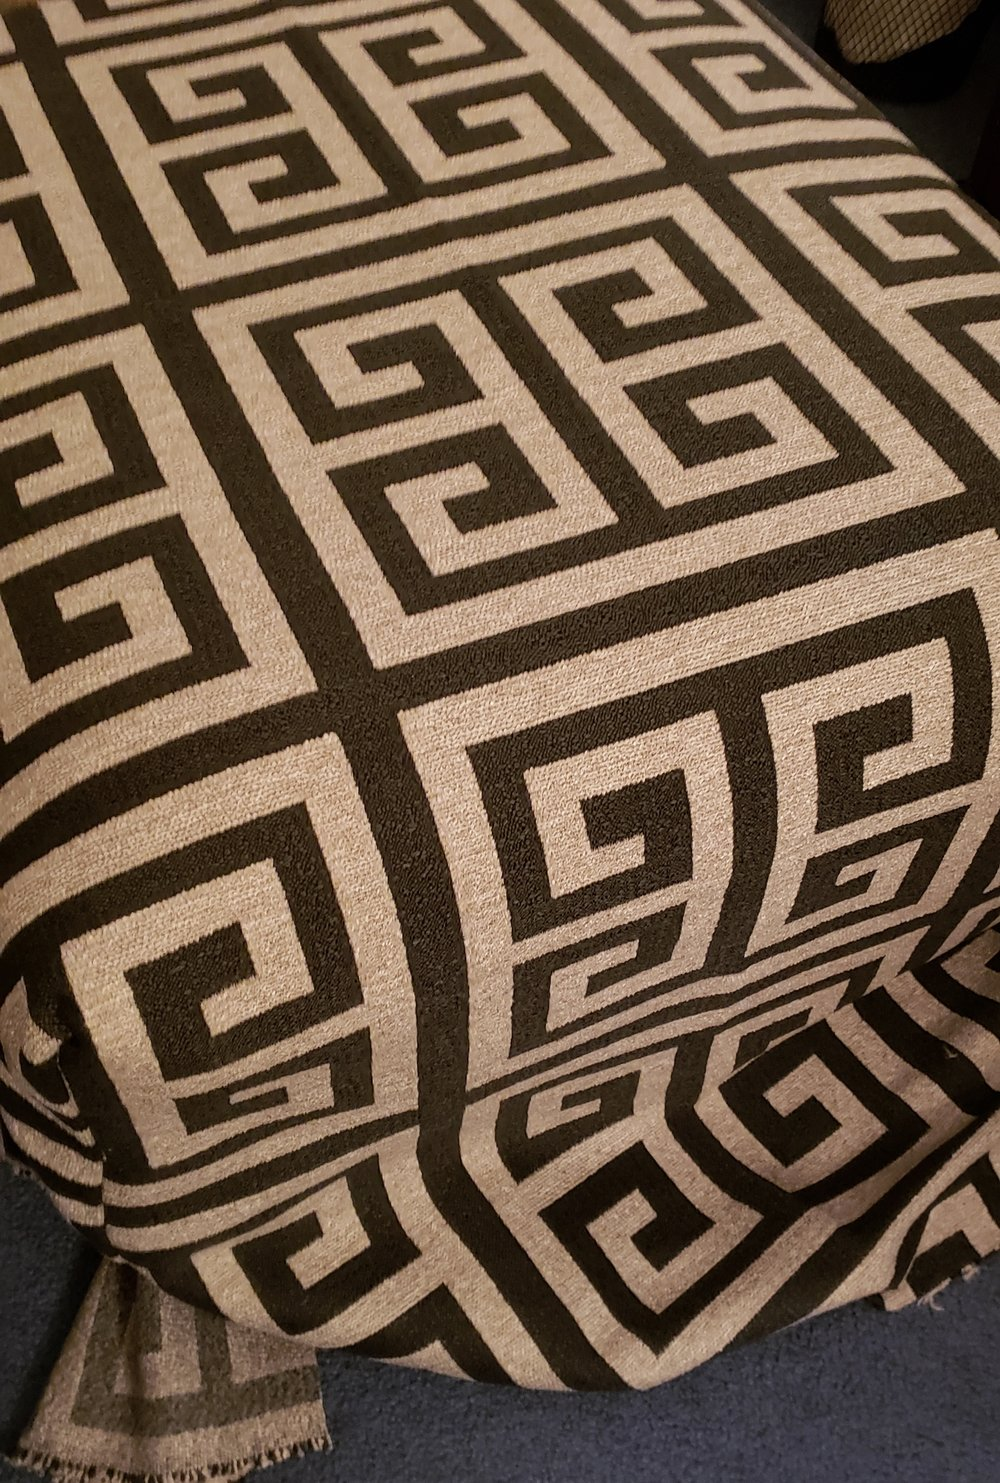 step five - Place the sewn cover over the ottoman with the correct side of the fabric facing out now. Check all four corners to see if they line up correctly and are taut enough. Also, are there any wrinkles elsewhere? Now is the time to make adjustments prior to stapling.